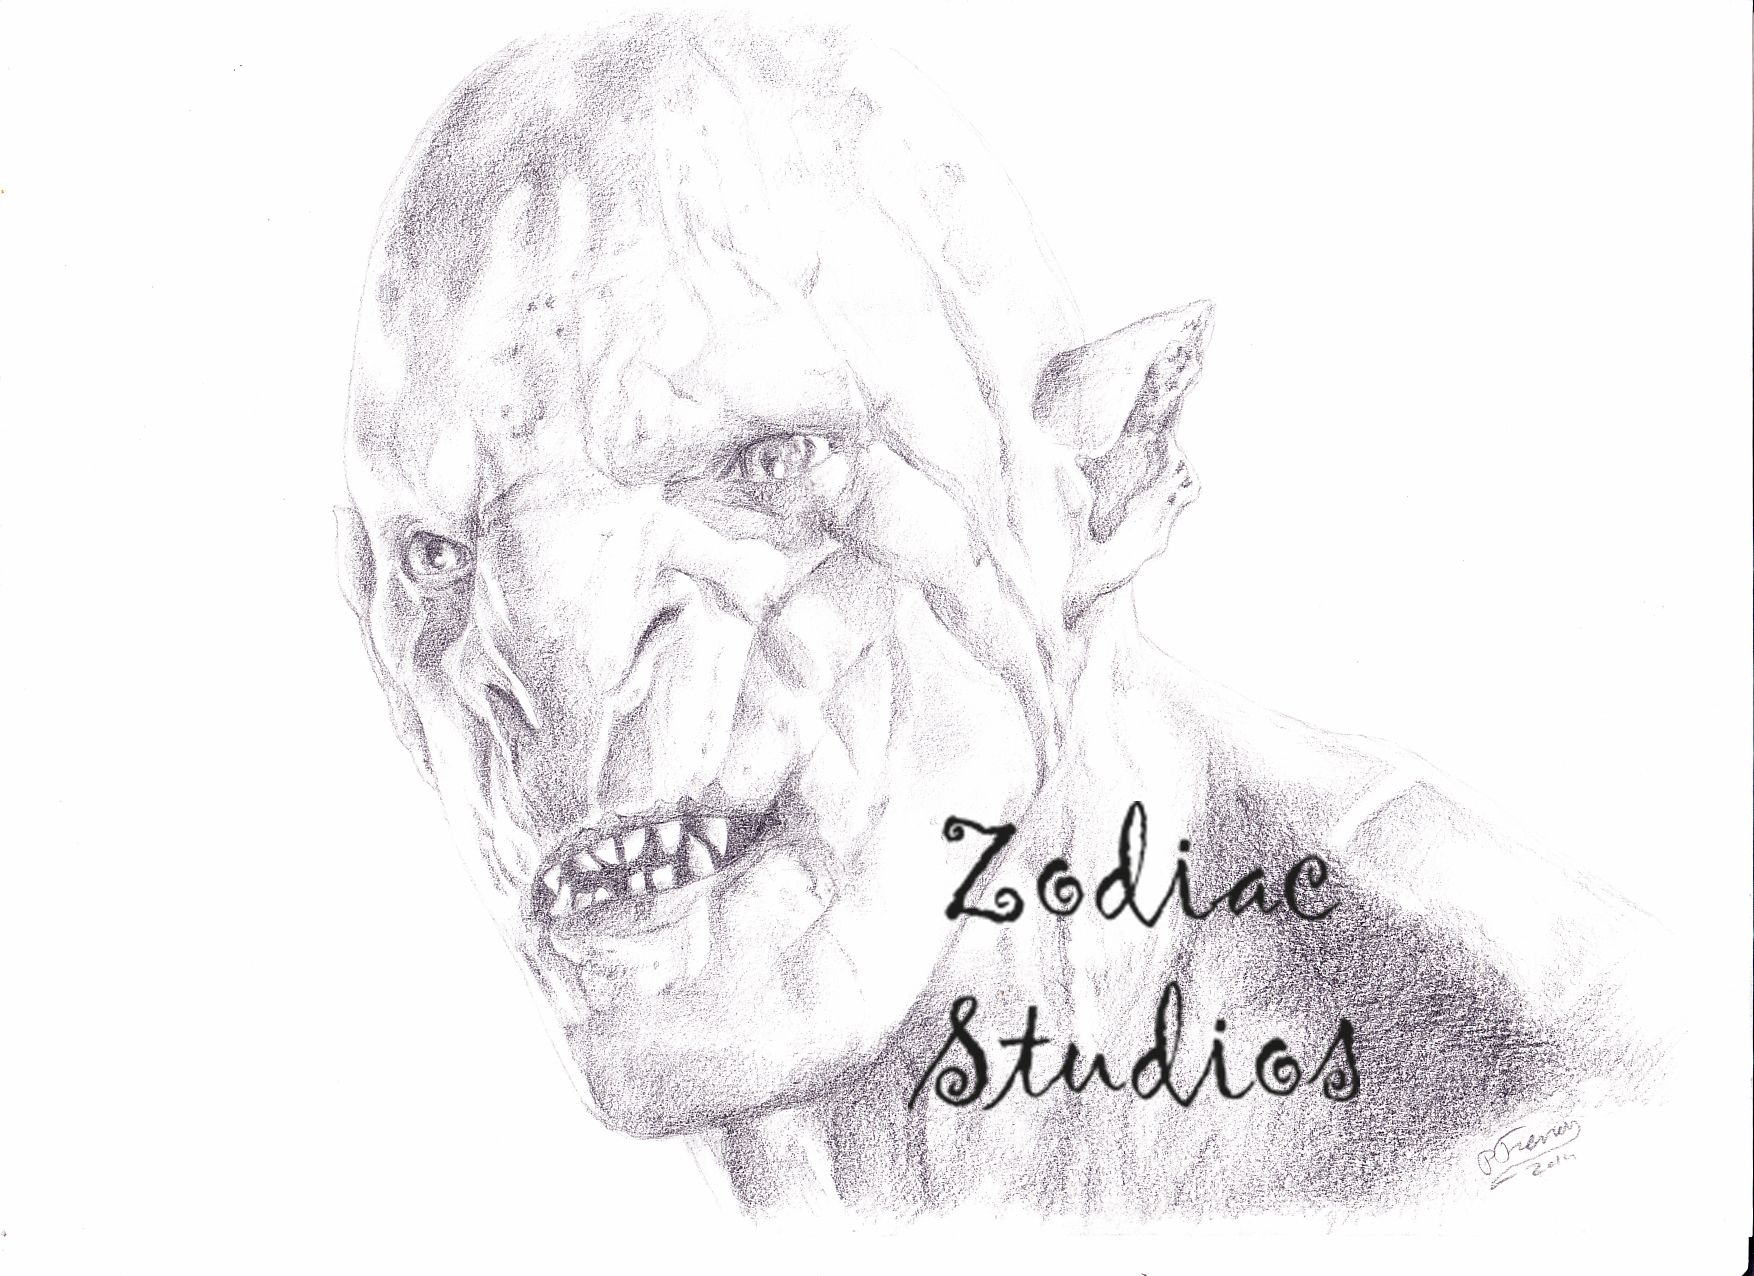 Pin Van Zodiac Studios Op Lord Of The Rings And The Hobbit Portraits By Paul